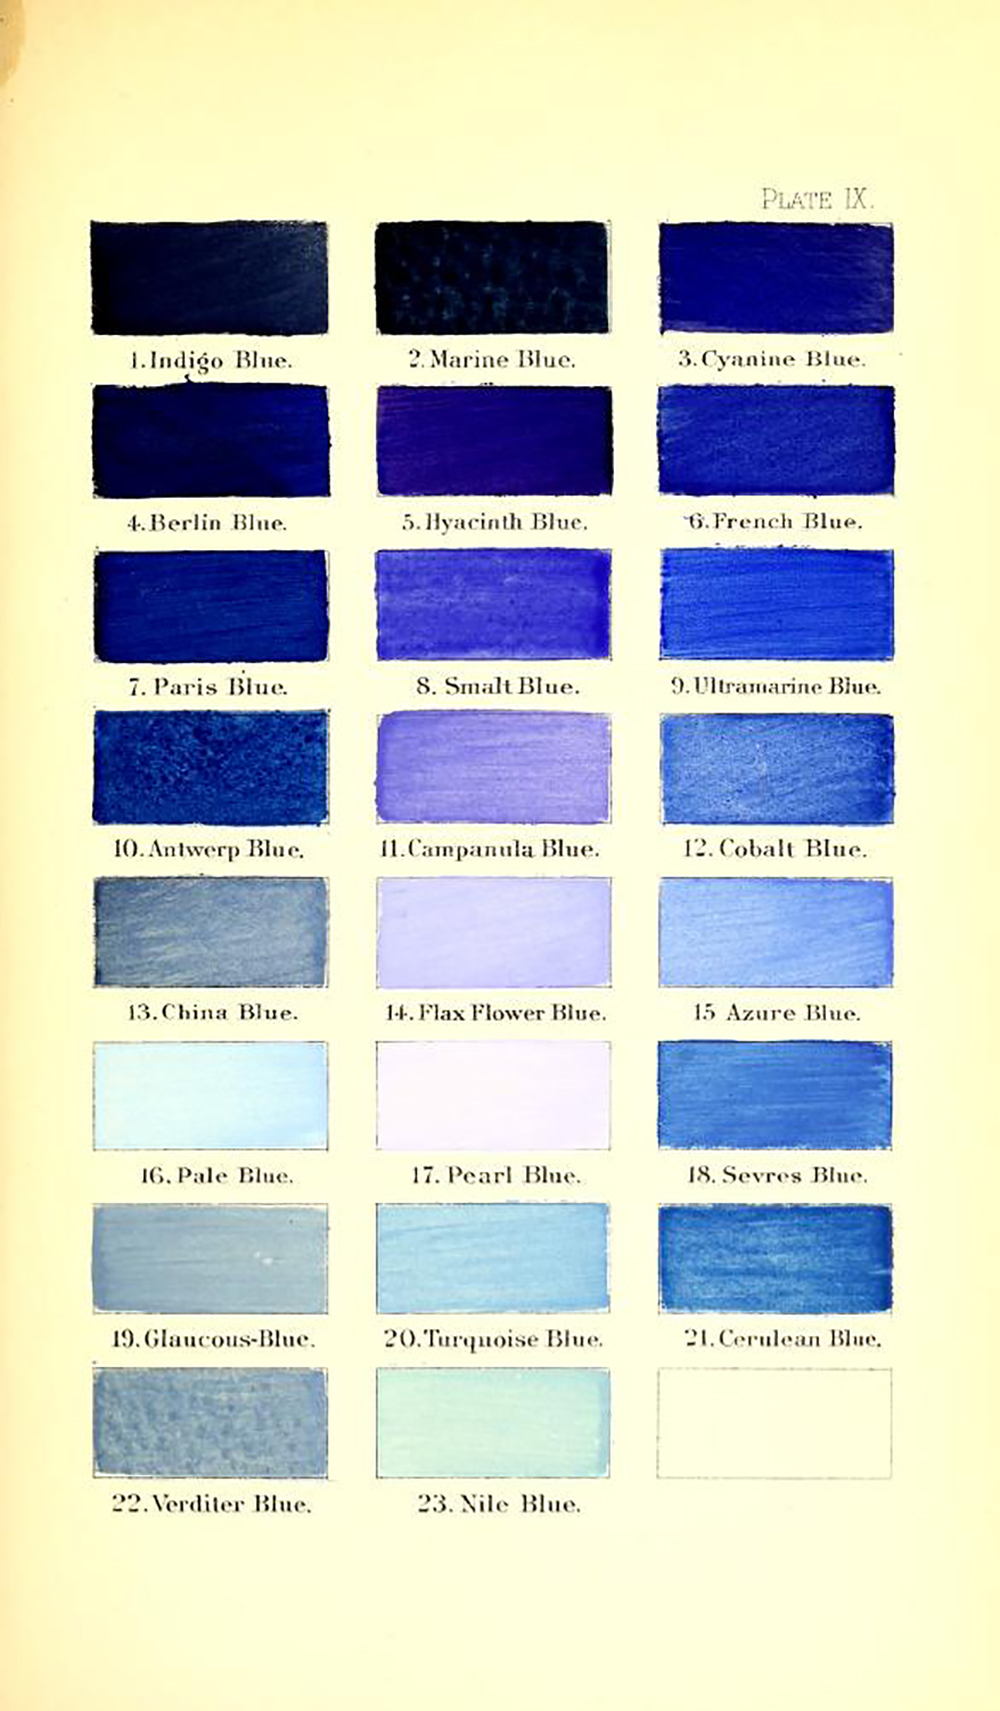 Ridgway color dictionary page - blues